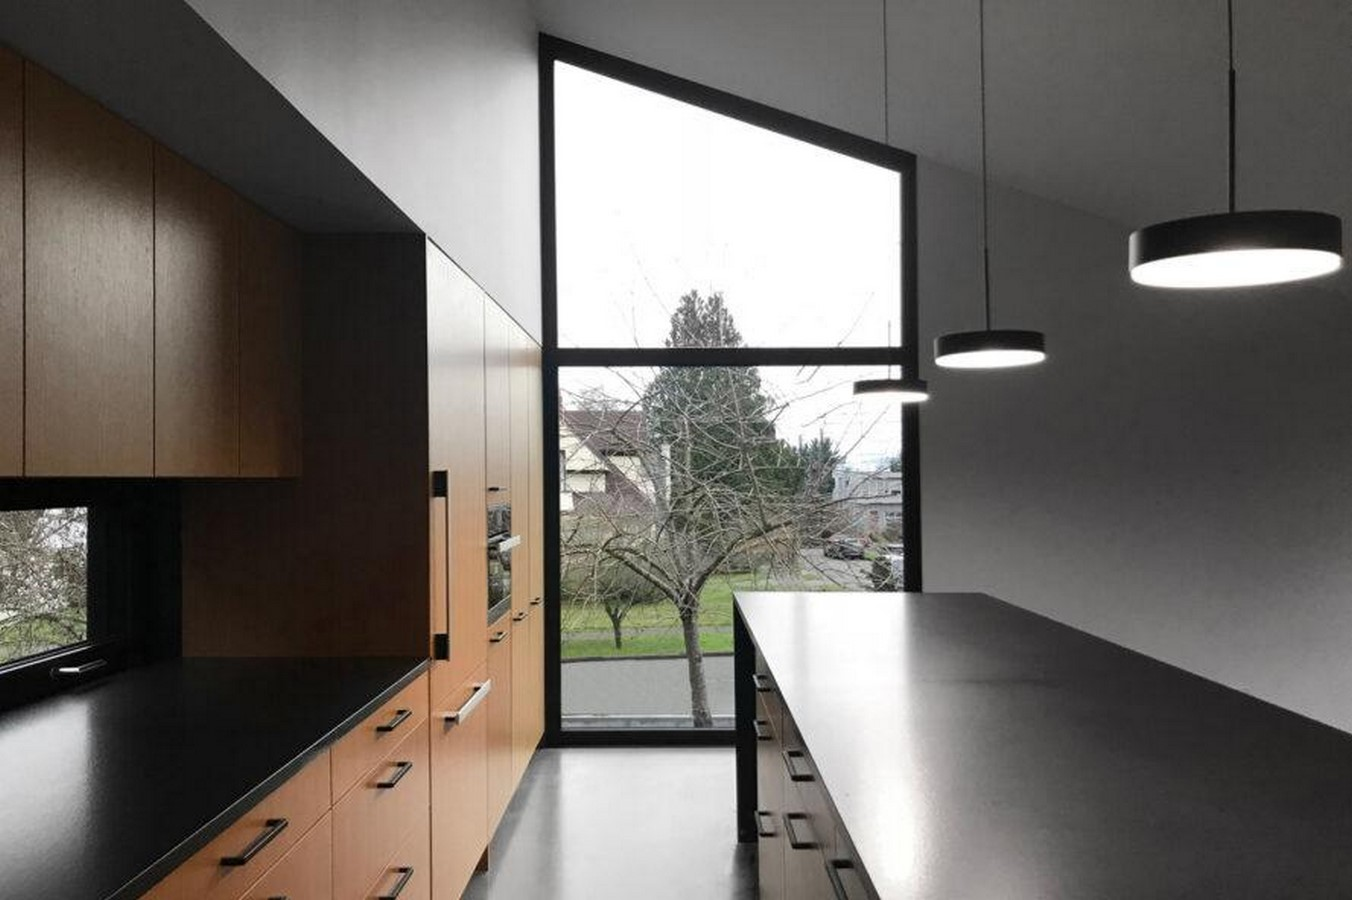 A net-zero compact home in Seattle is inspired by Shibui minimalism designed by SHED Architecture and Design - Sheet3